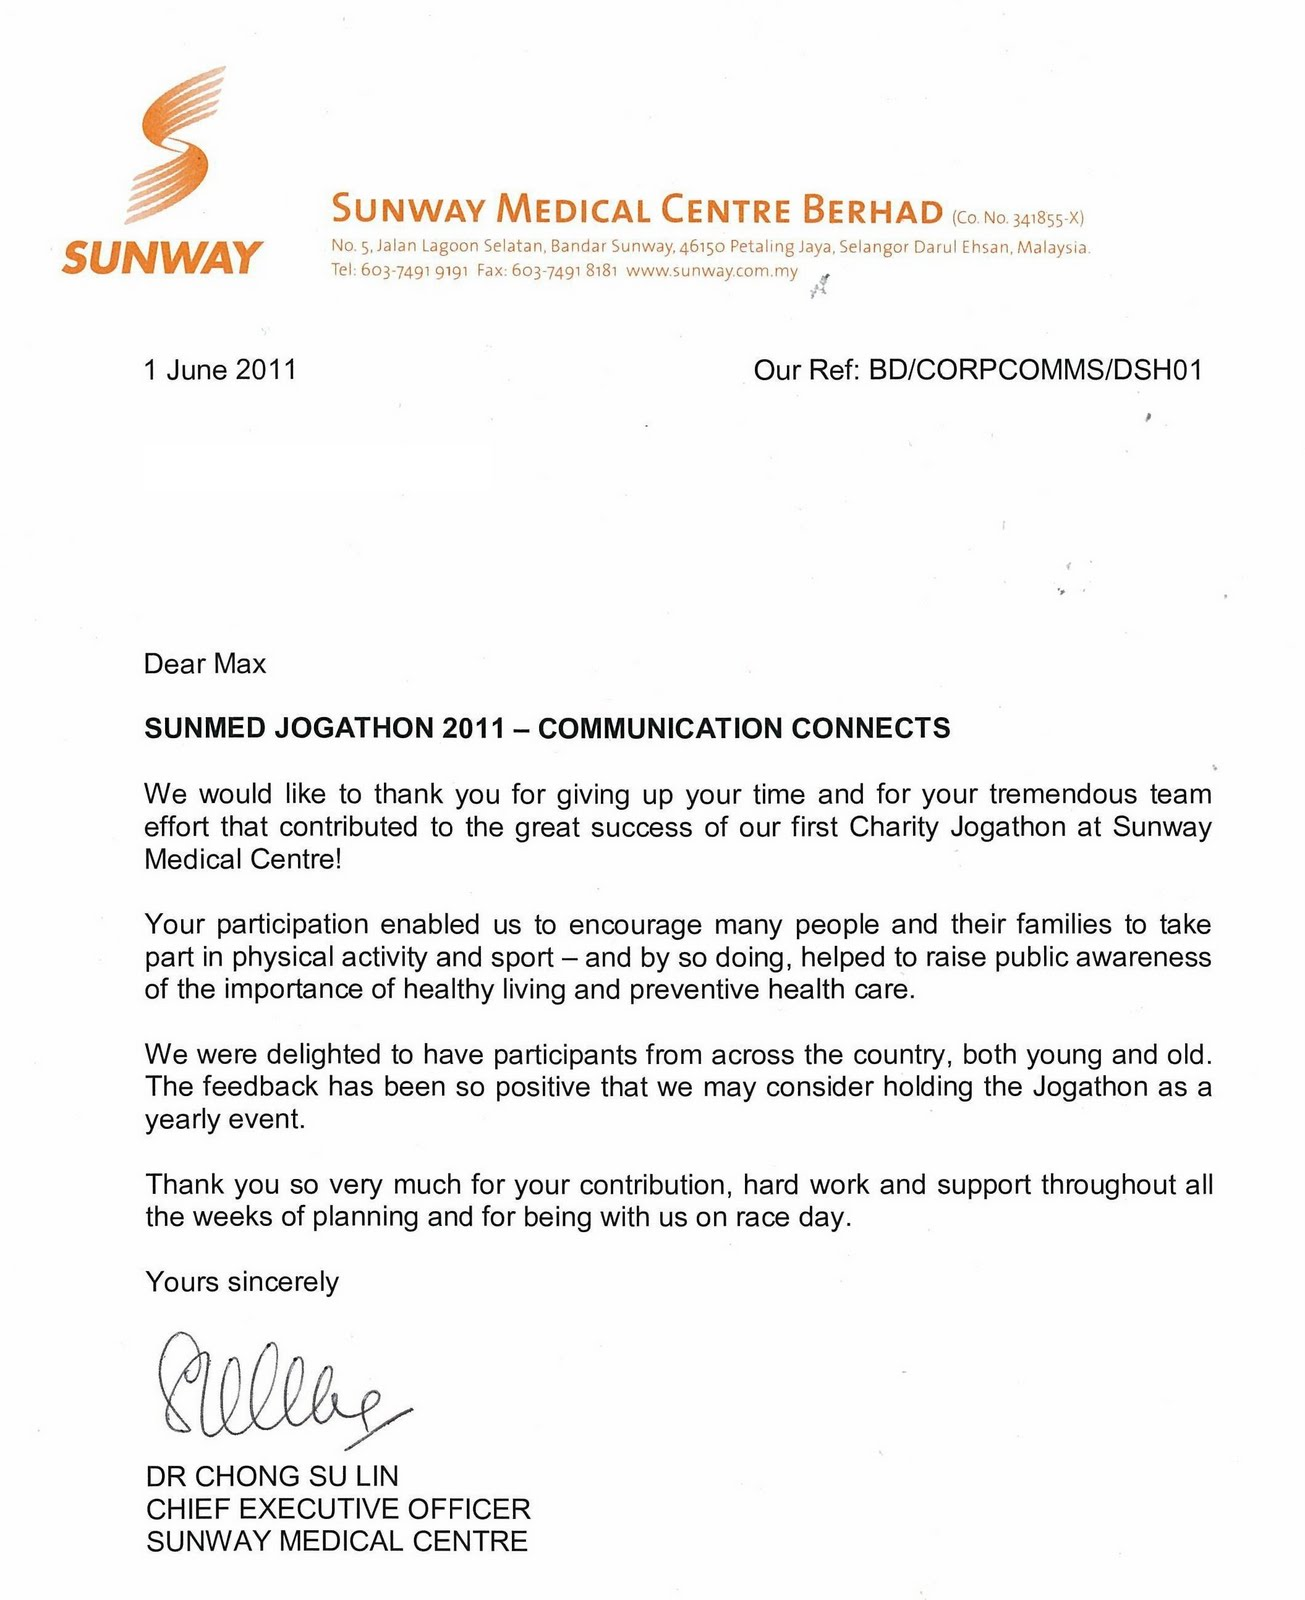 RUNNING WITH PASSION Thank You Letter From Sunway Medical CEO